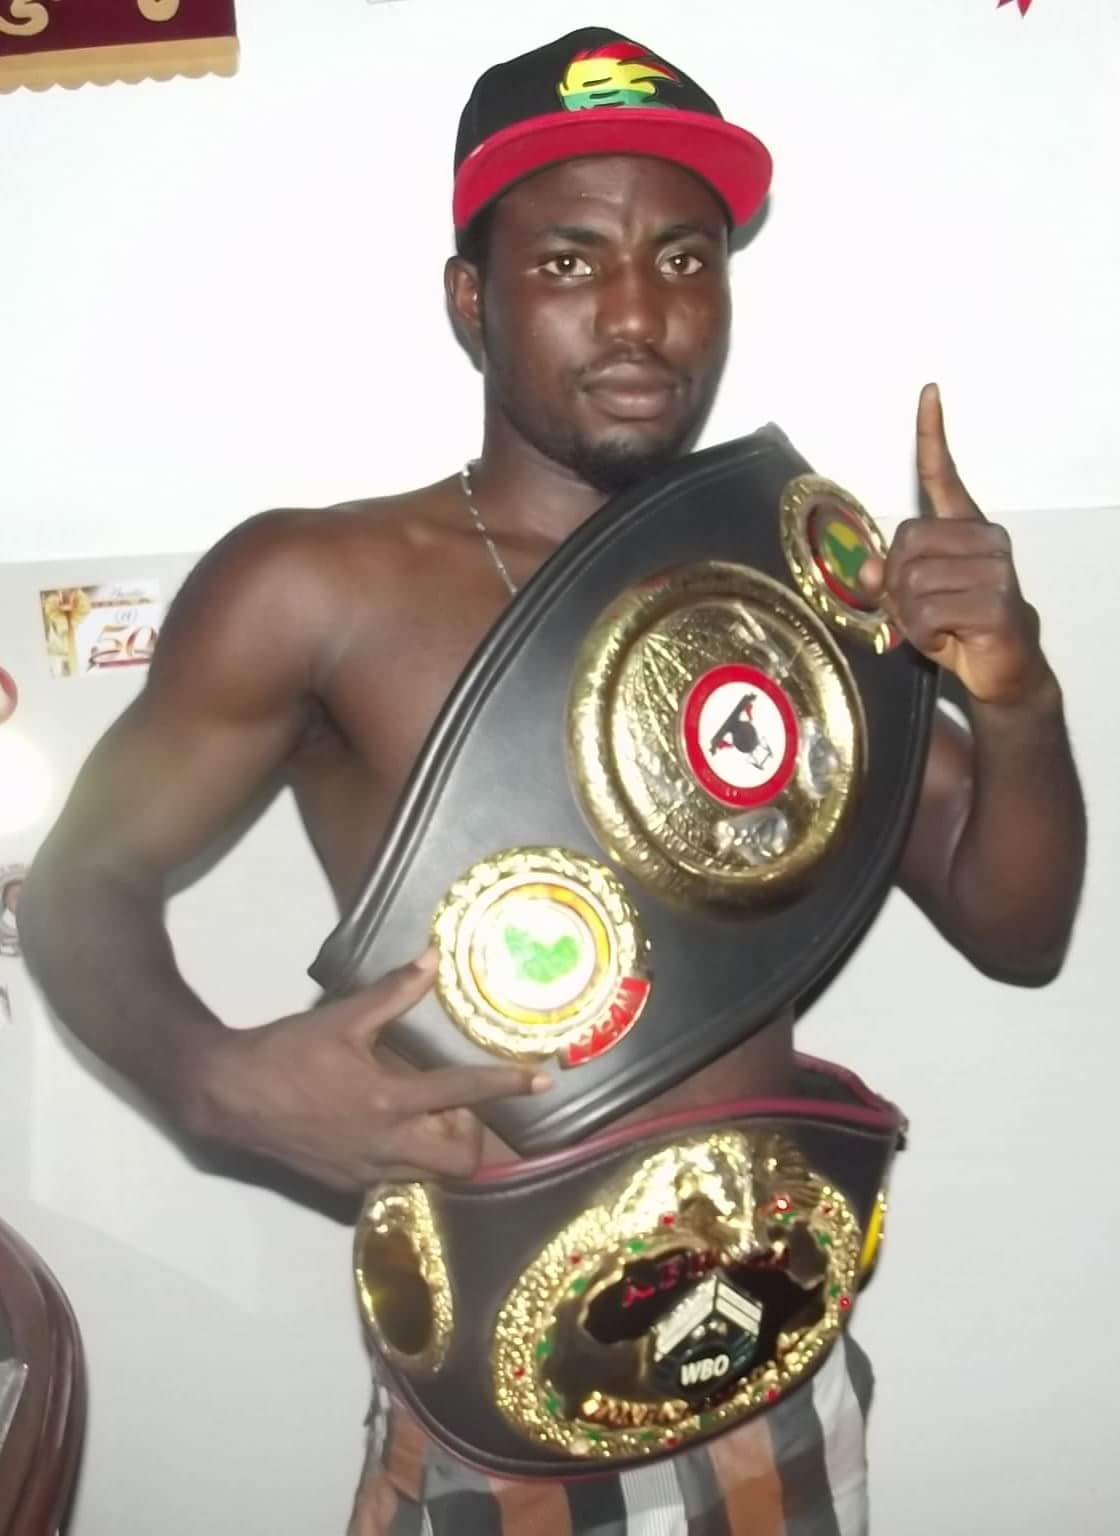 Rafael Mensah - Ghana's WBA number 3 rated super featherweight, Rafael Mensah whose only previous fight outside Ghana was when claiming a TKO victory over Sunday Ajayi in Coutonou, Benin in December 2011, will have the chance to fight outside Africa for the first time when he faces Fatiou Fassinou of Benin in the UK on March 18.